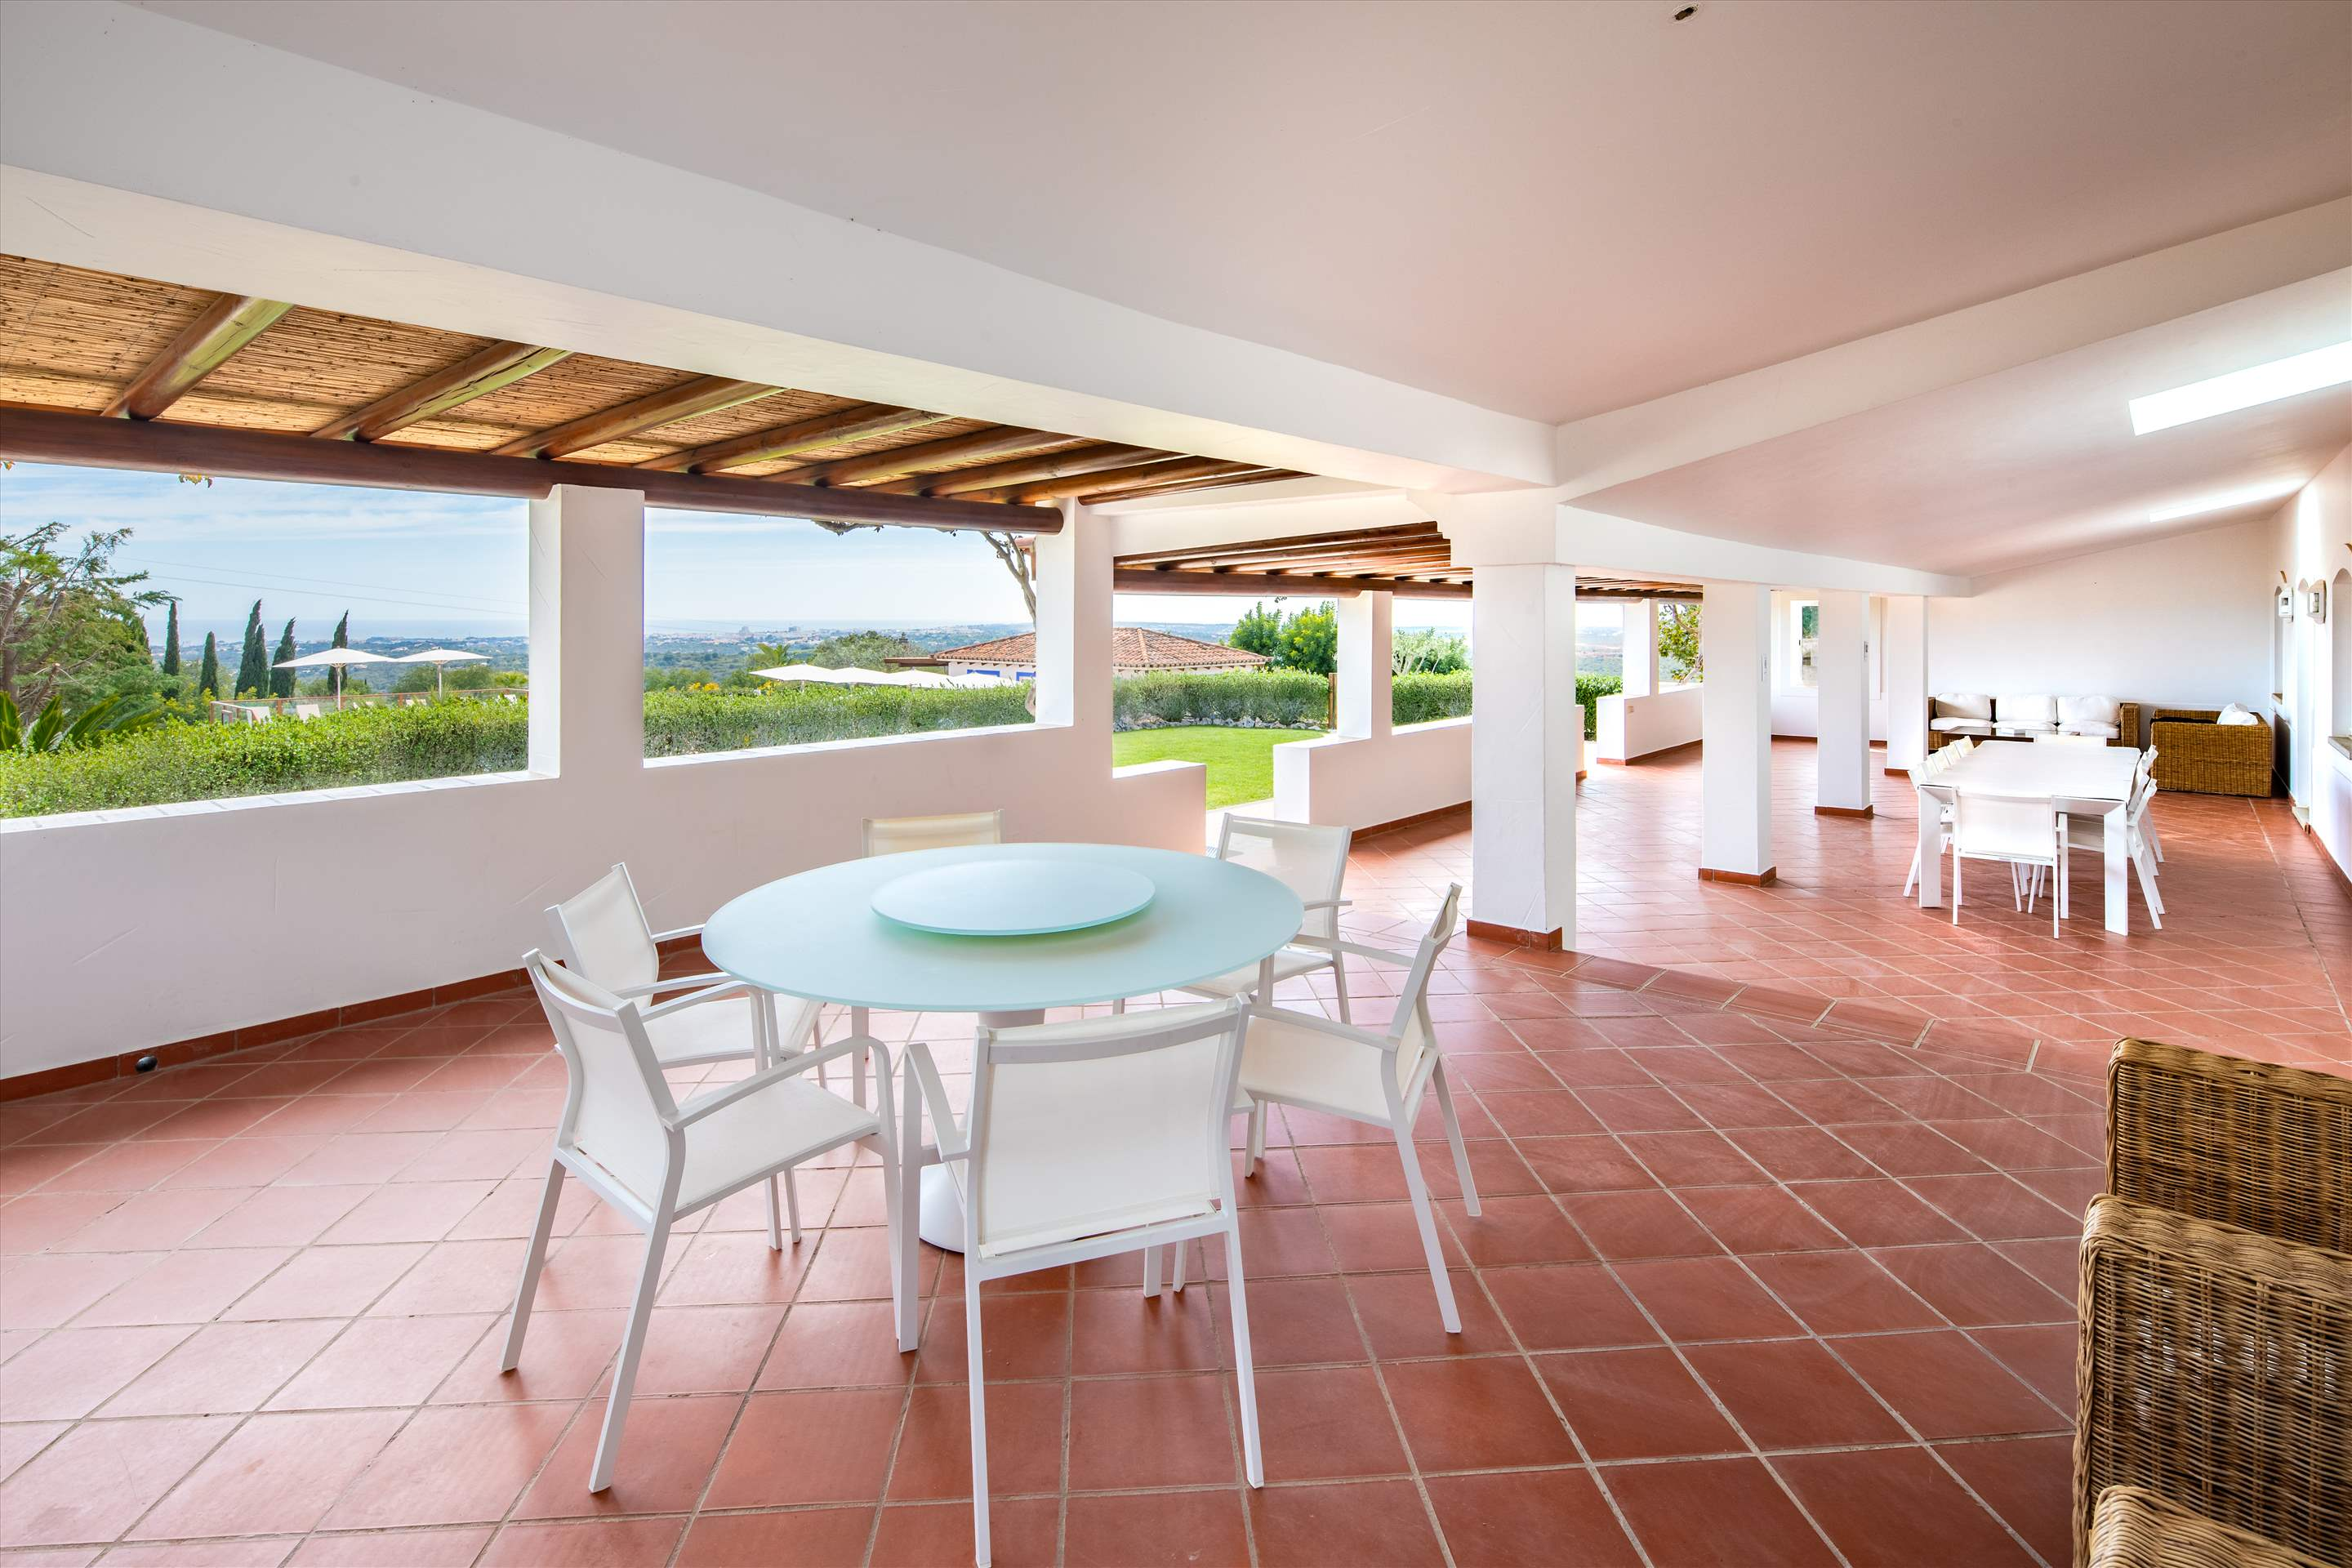 Casa da Montanha, 15-16 persons, 9 bedroom villa in Vilamoura Area, Algarve Photo #7